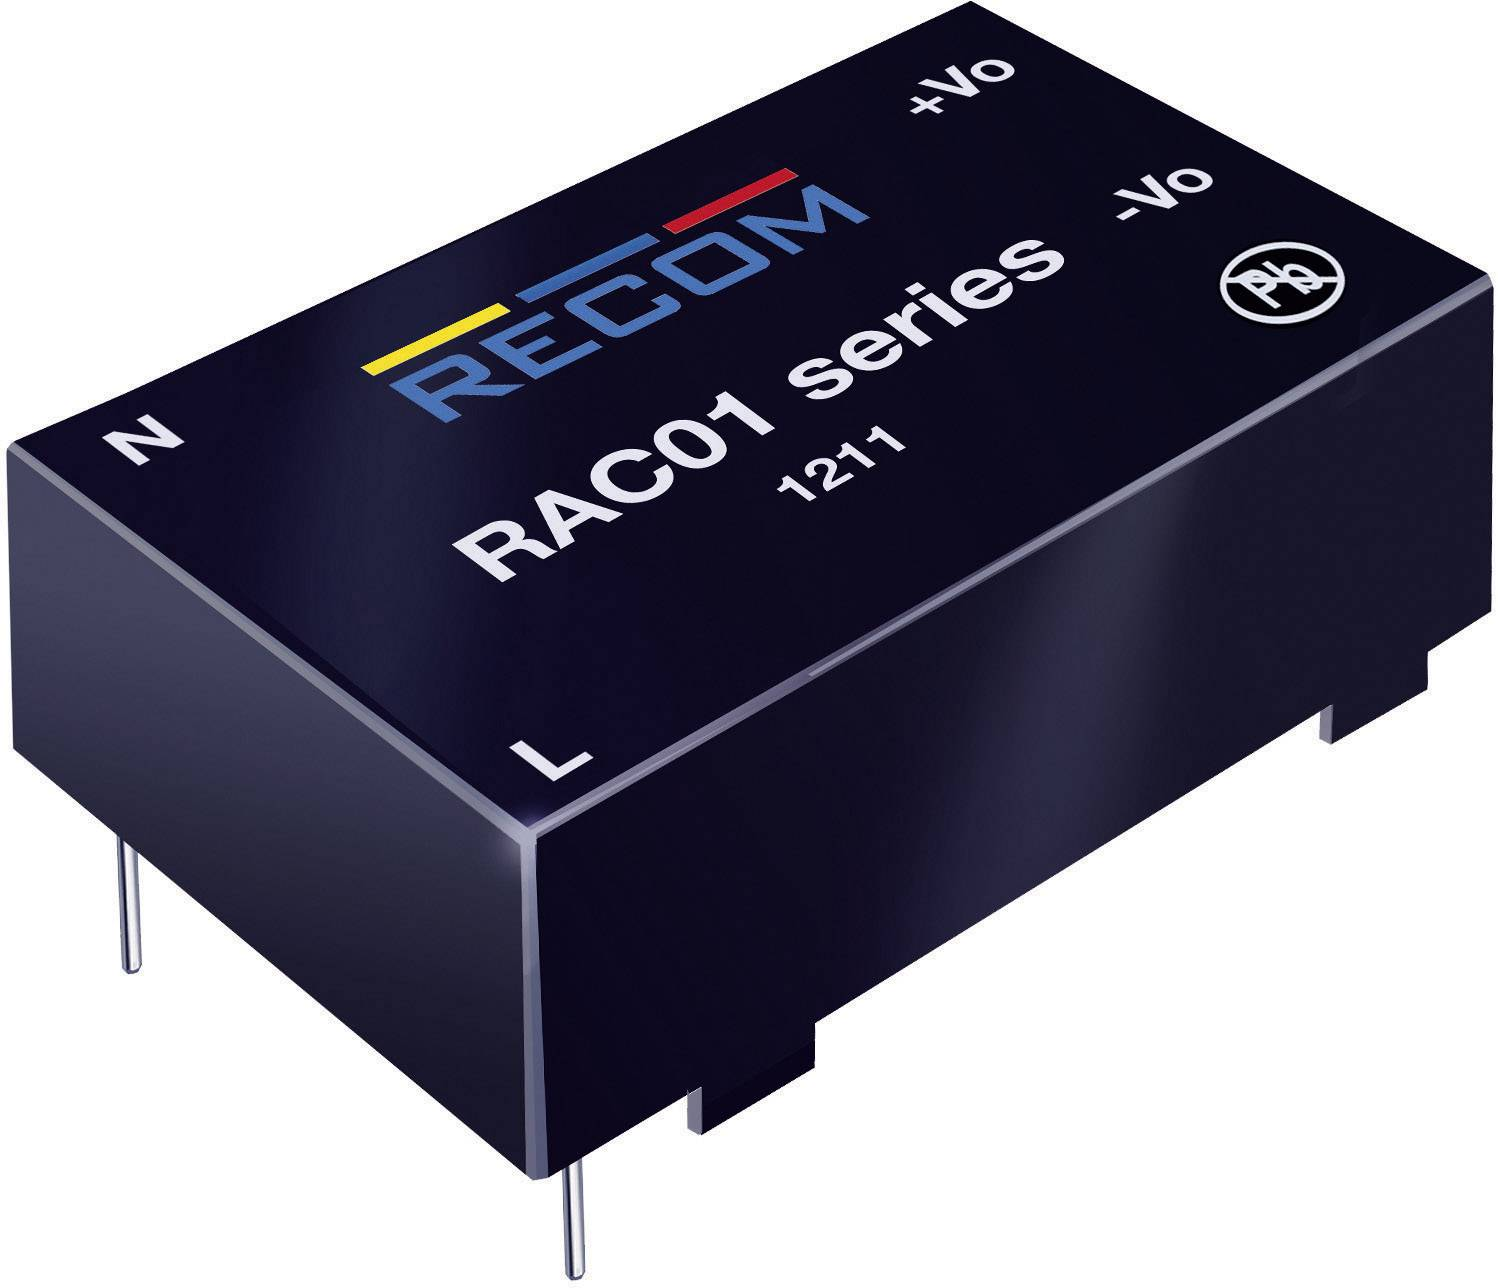 Sieťový zdroj do DPS Recom International RAC01-12SC, 12 V/DC, 0,083 A, 1 W